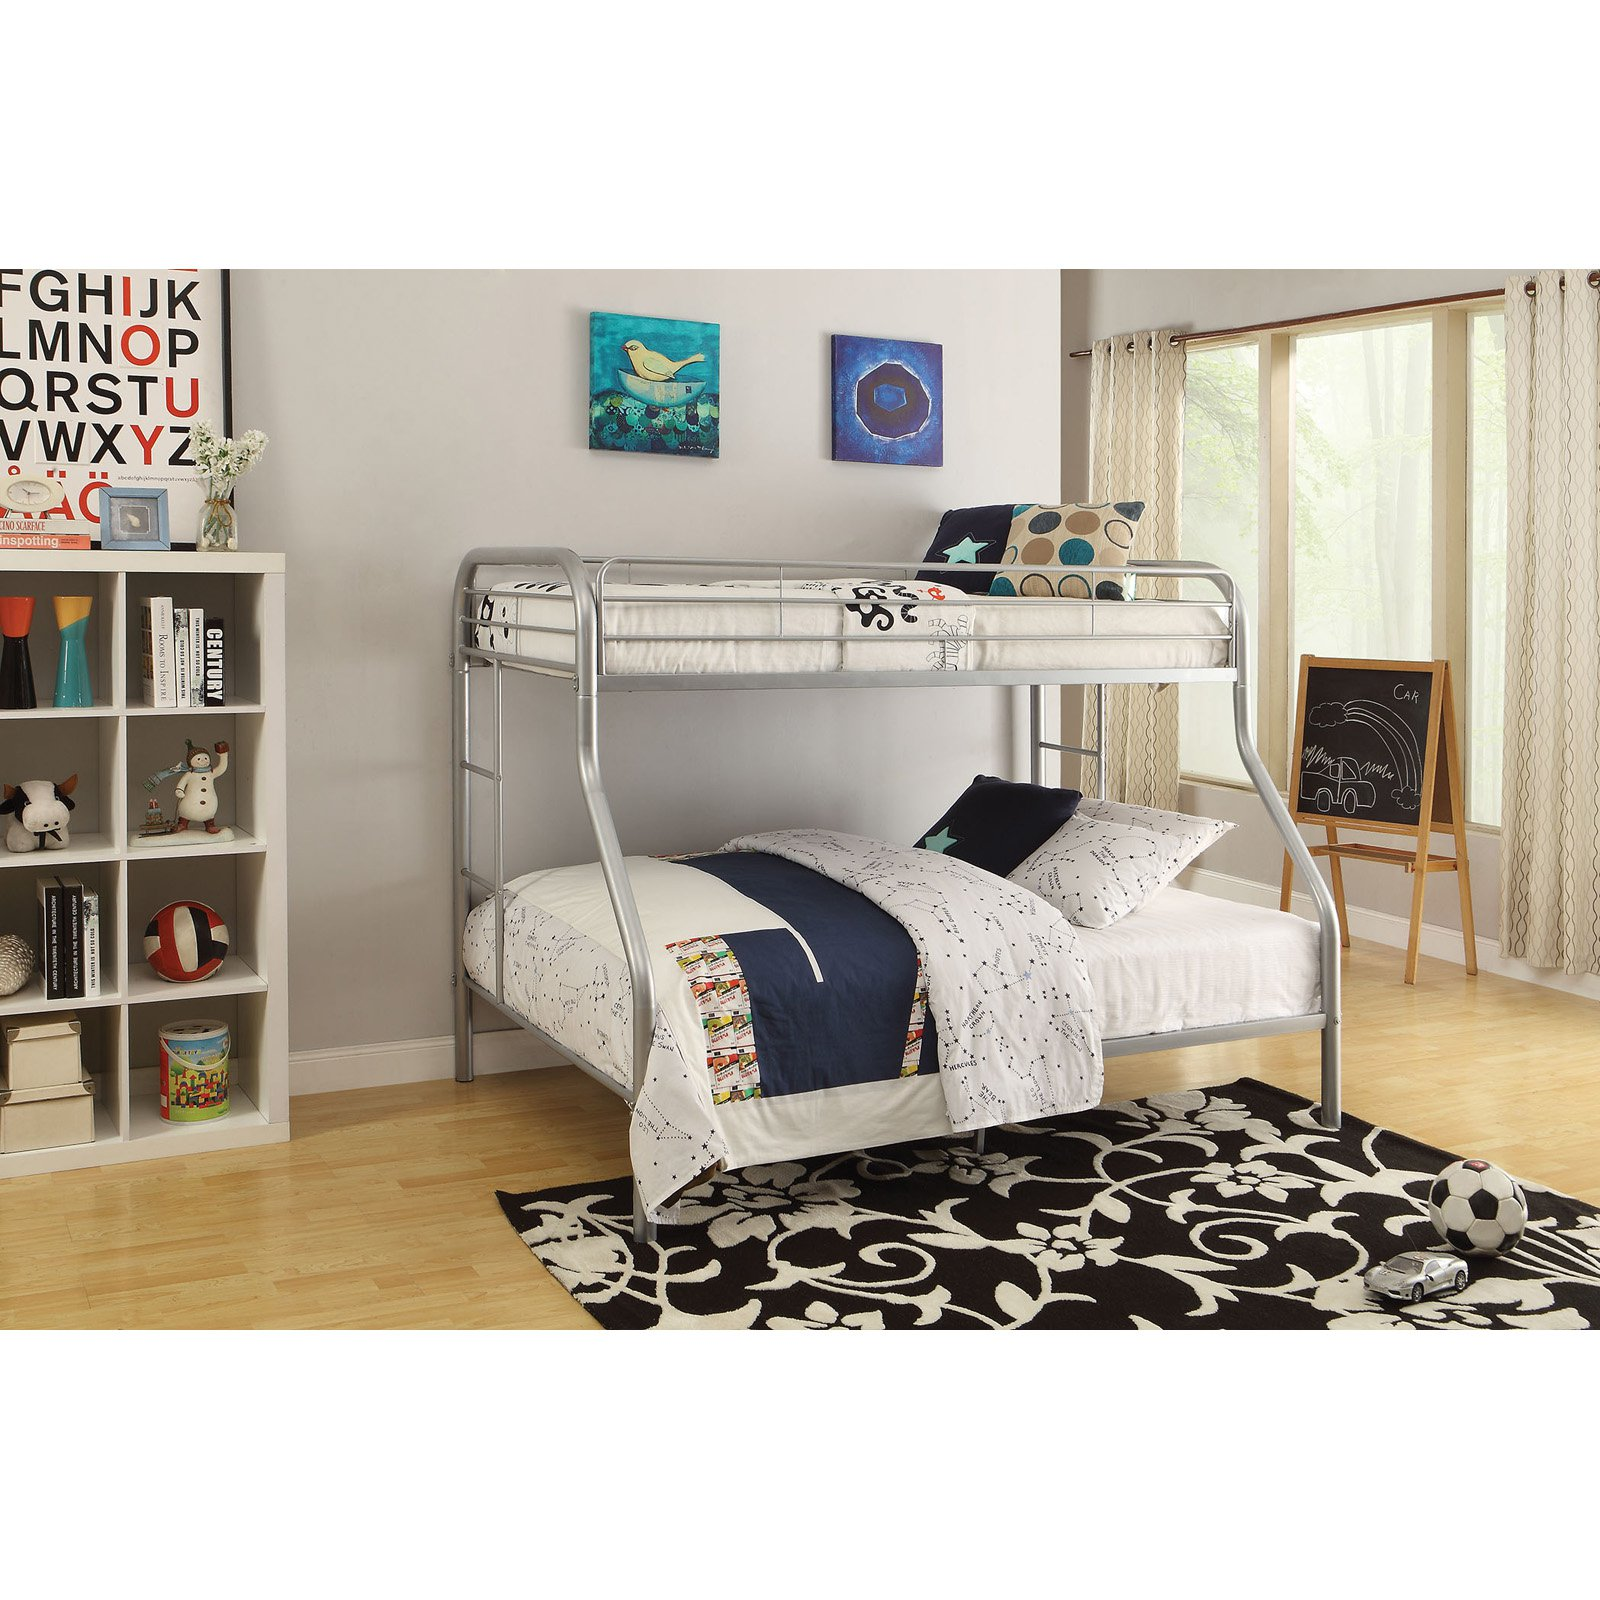 Tritan Twin XL Over Queen Metal Bunk Bed, Silver